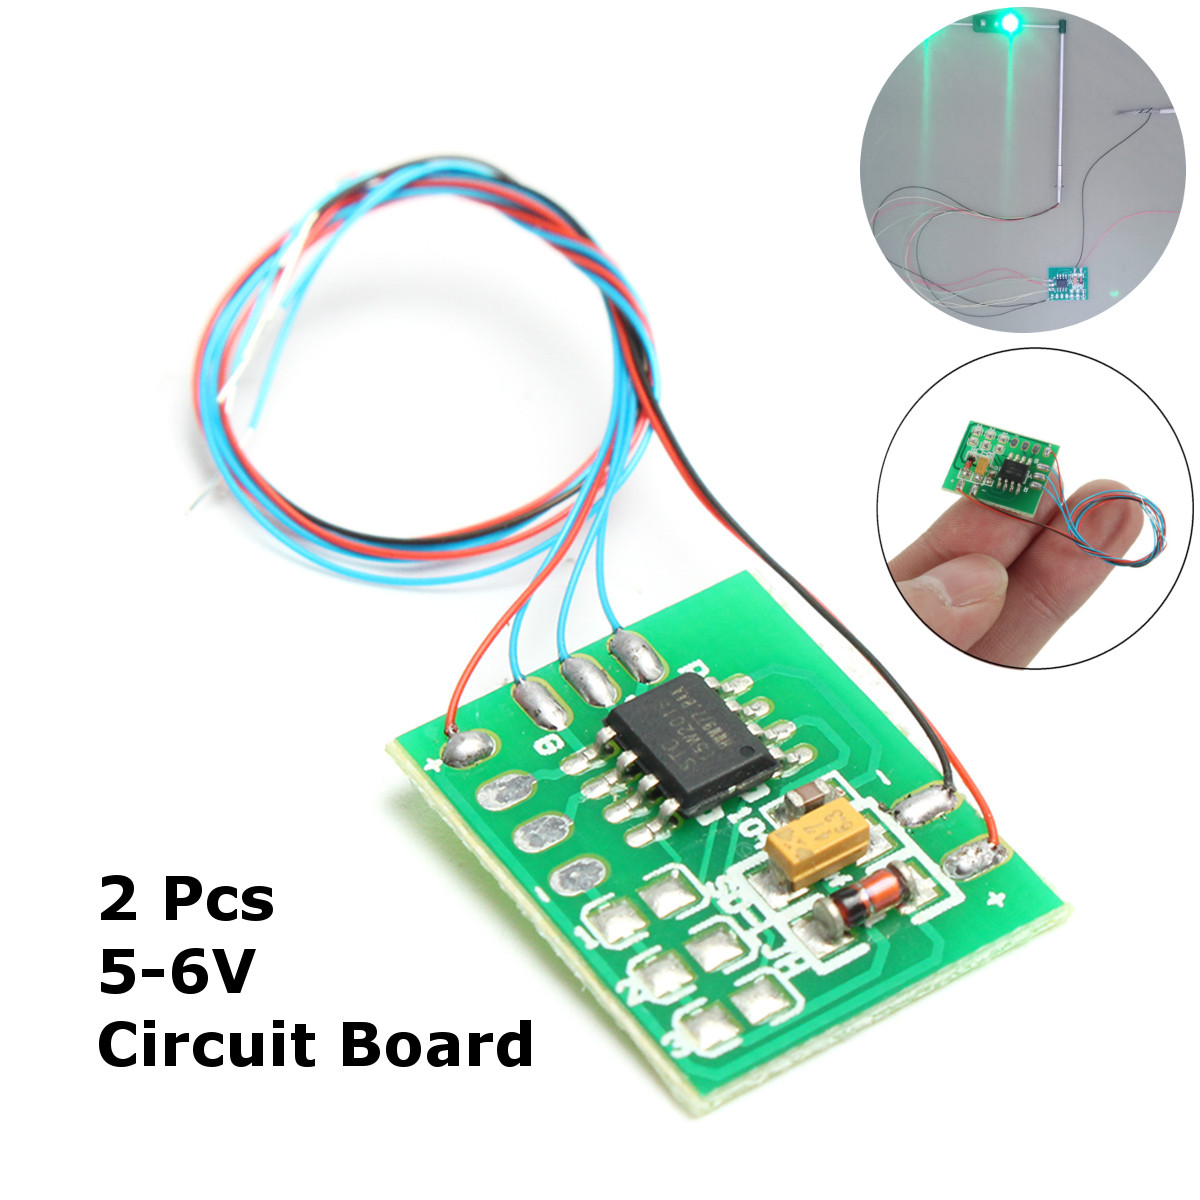 2pcs Diy Scale Construction Sand Table Model Traffic Light Signal Led Circuit Board Ho Train Railway Miniatures In Building Kits From Toys